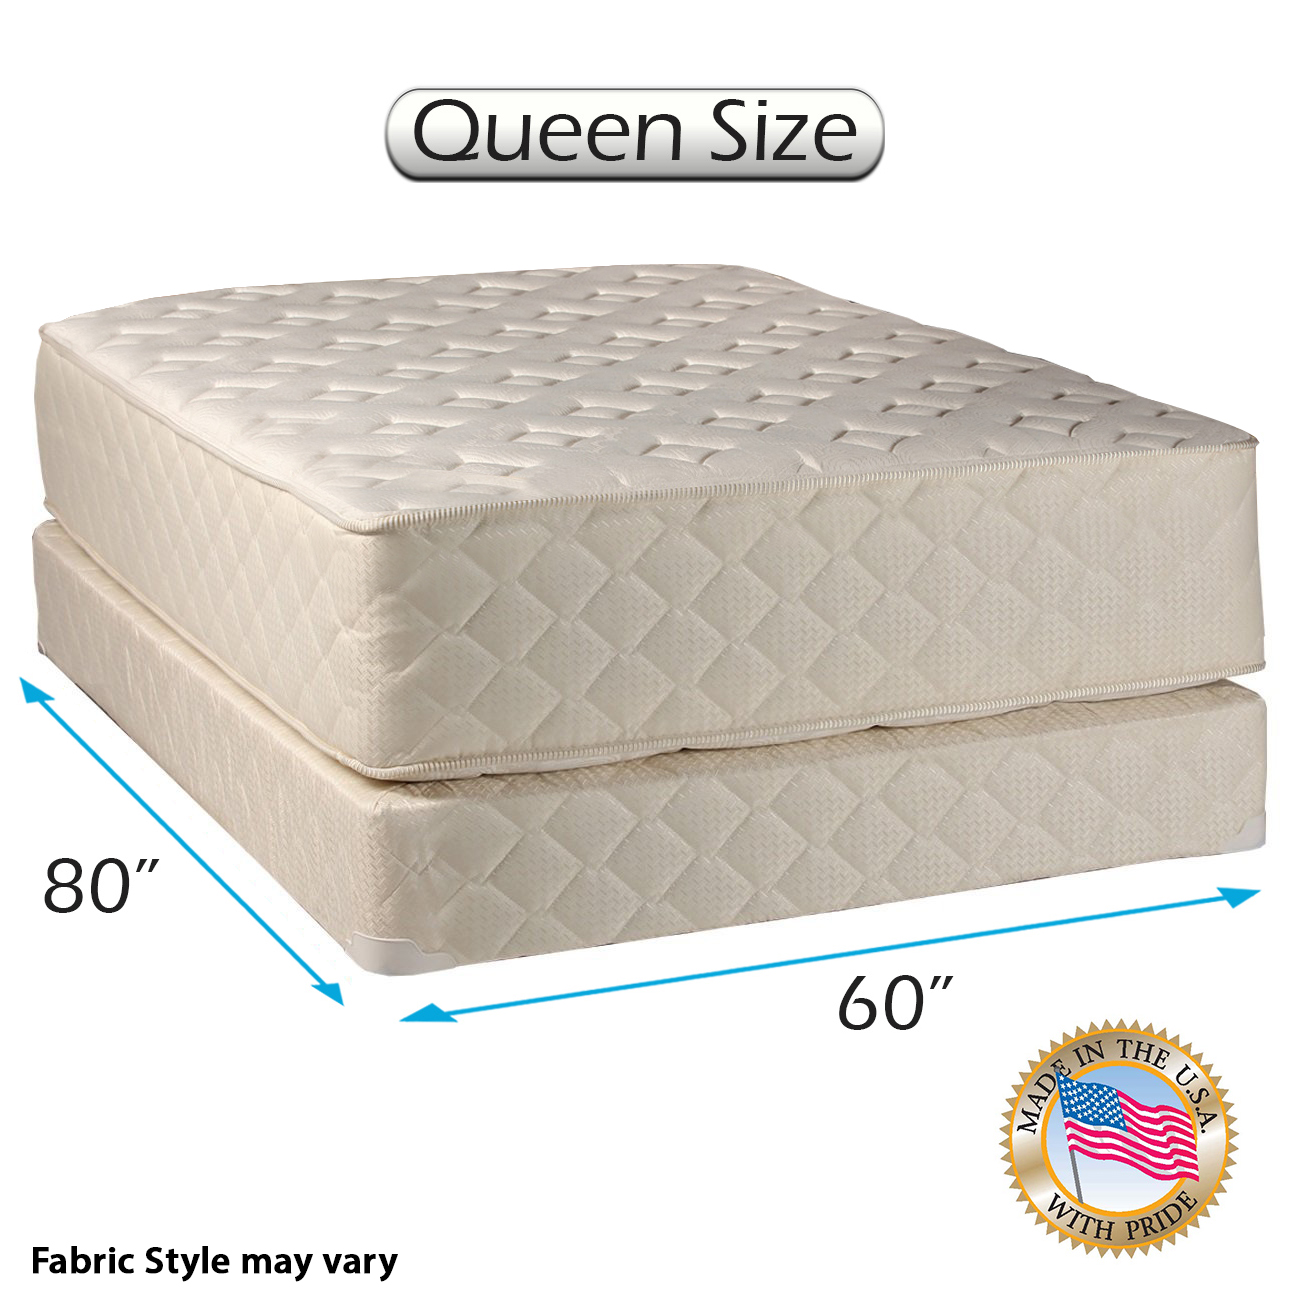 "Highlight Luxury Firm Queen Size (60""x80""x14"") Mattress & Box Spring Set -"